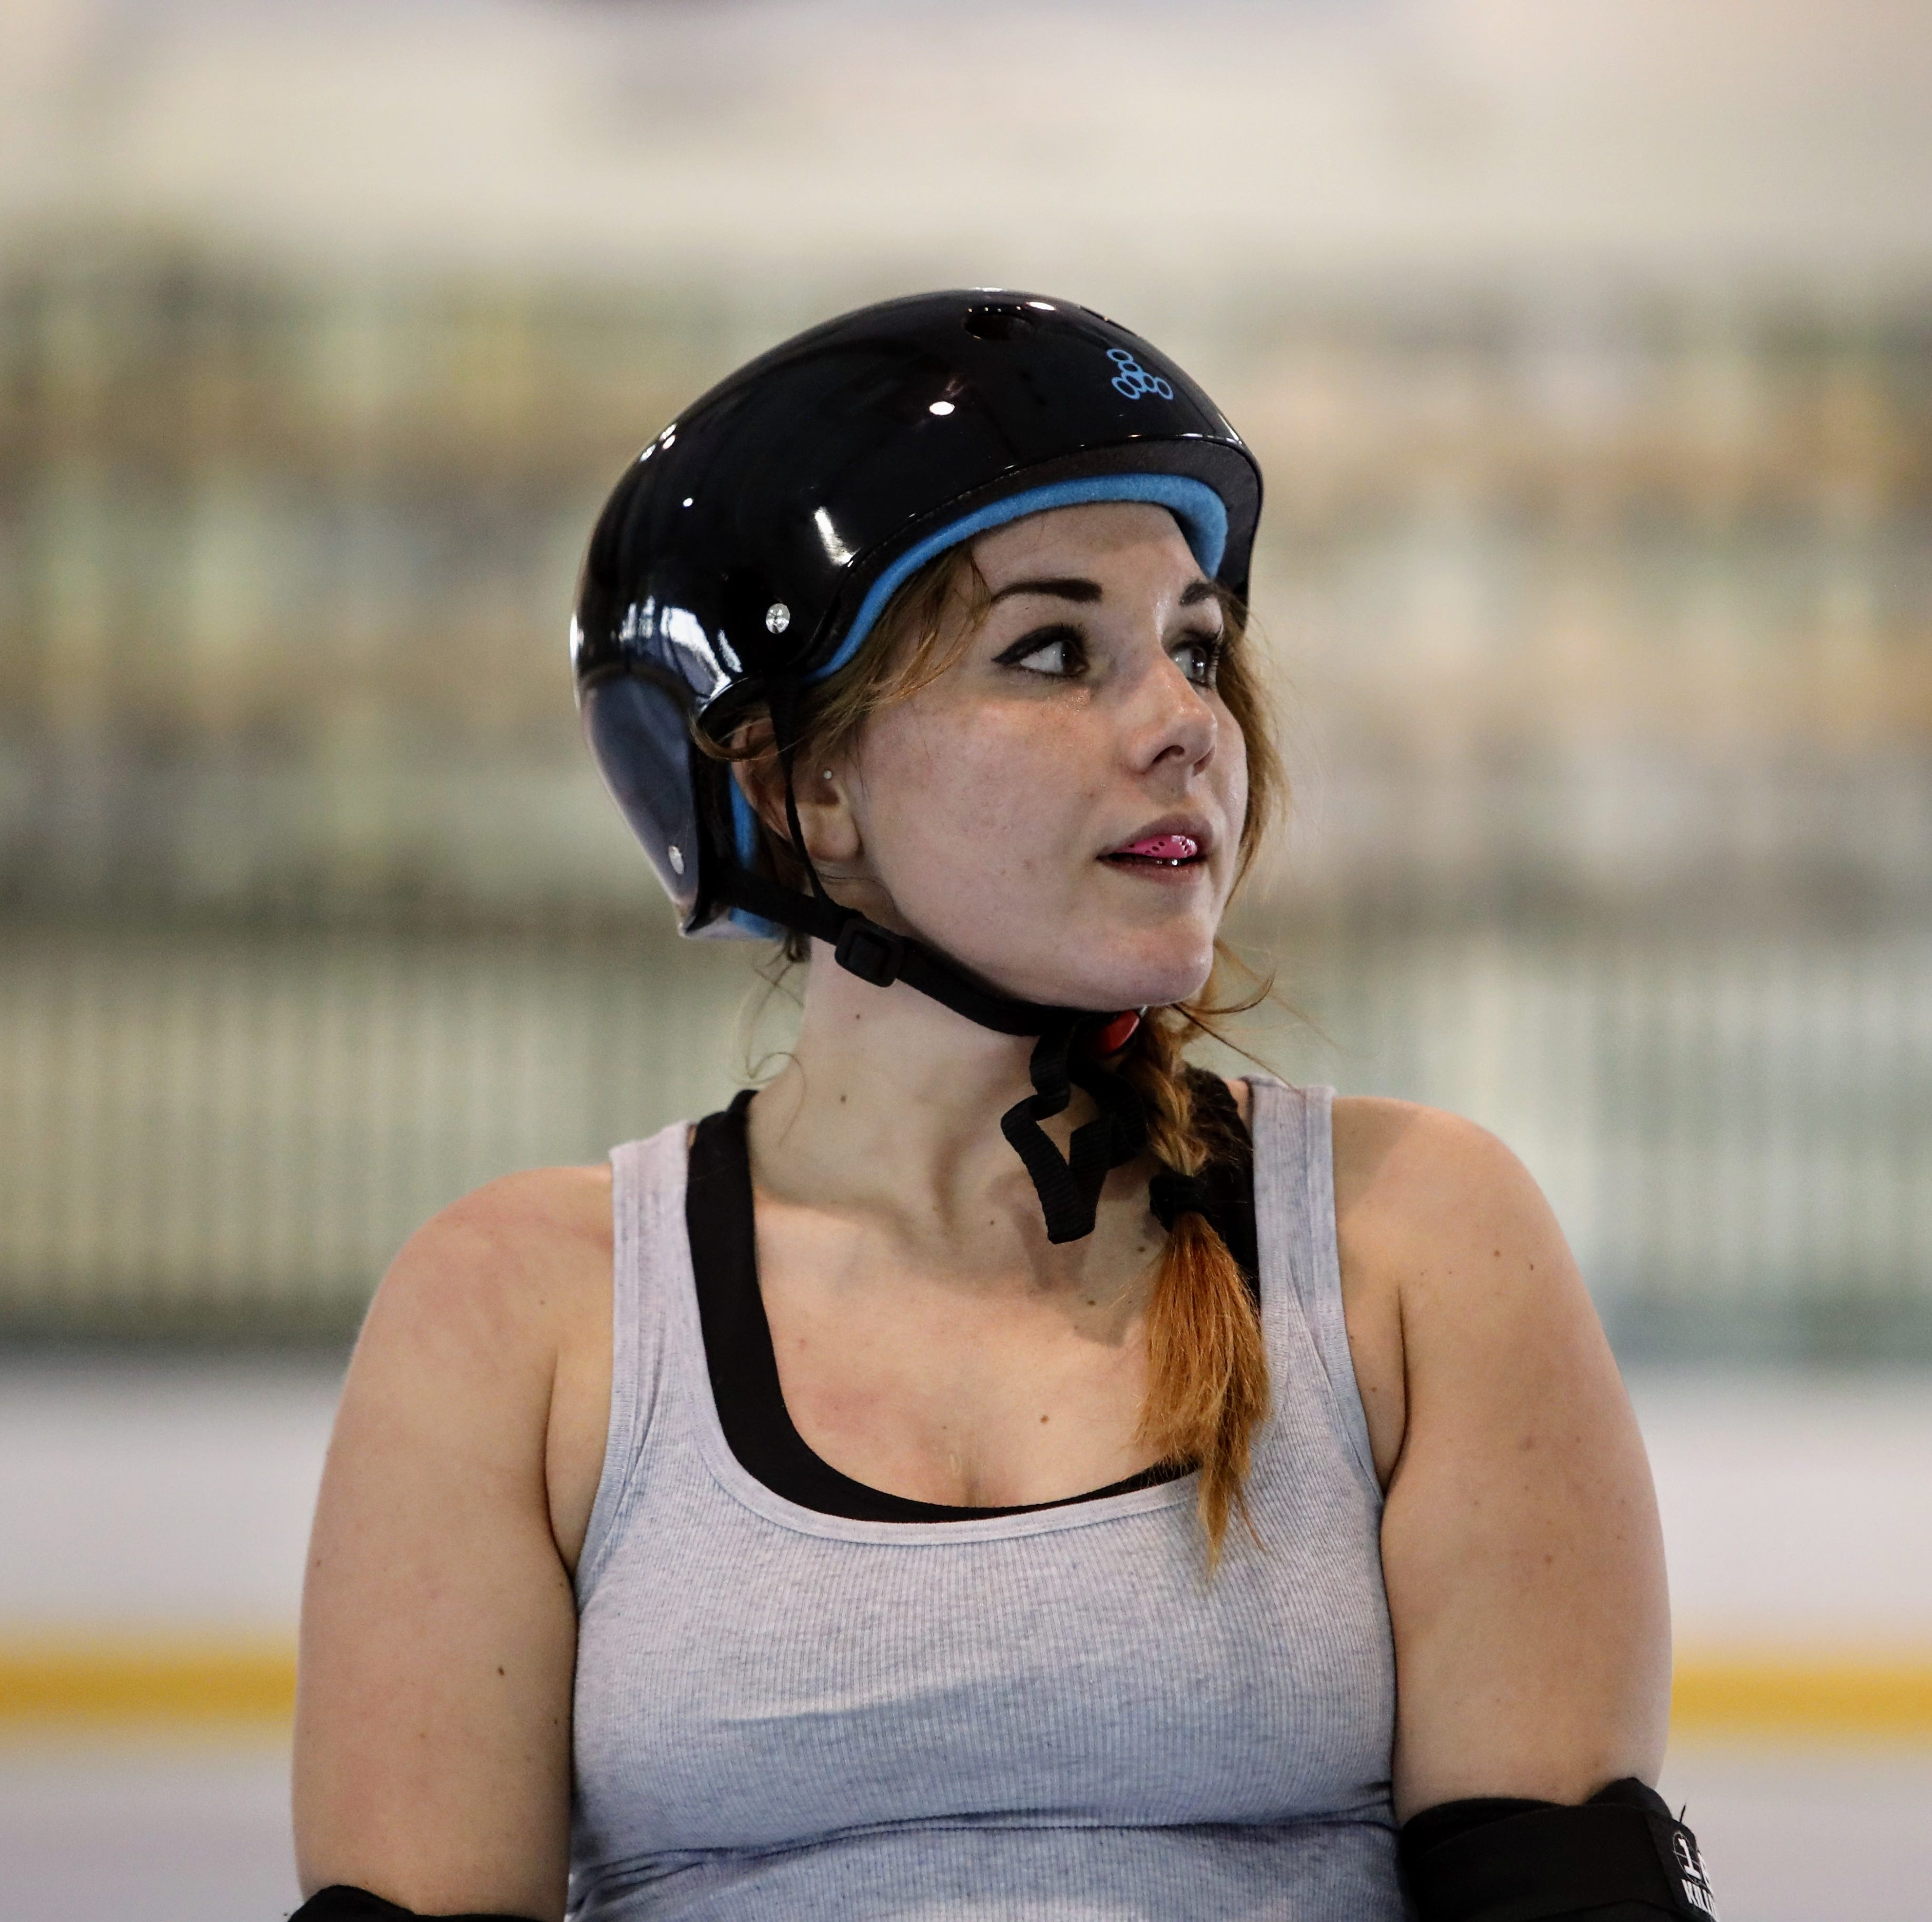 Roller derby in Redding: A look at Shasta County's offbeat skating scene